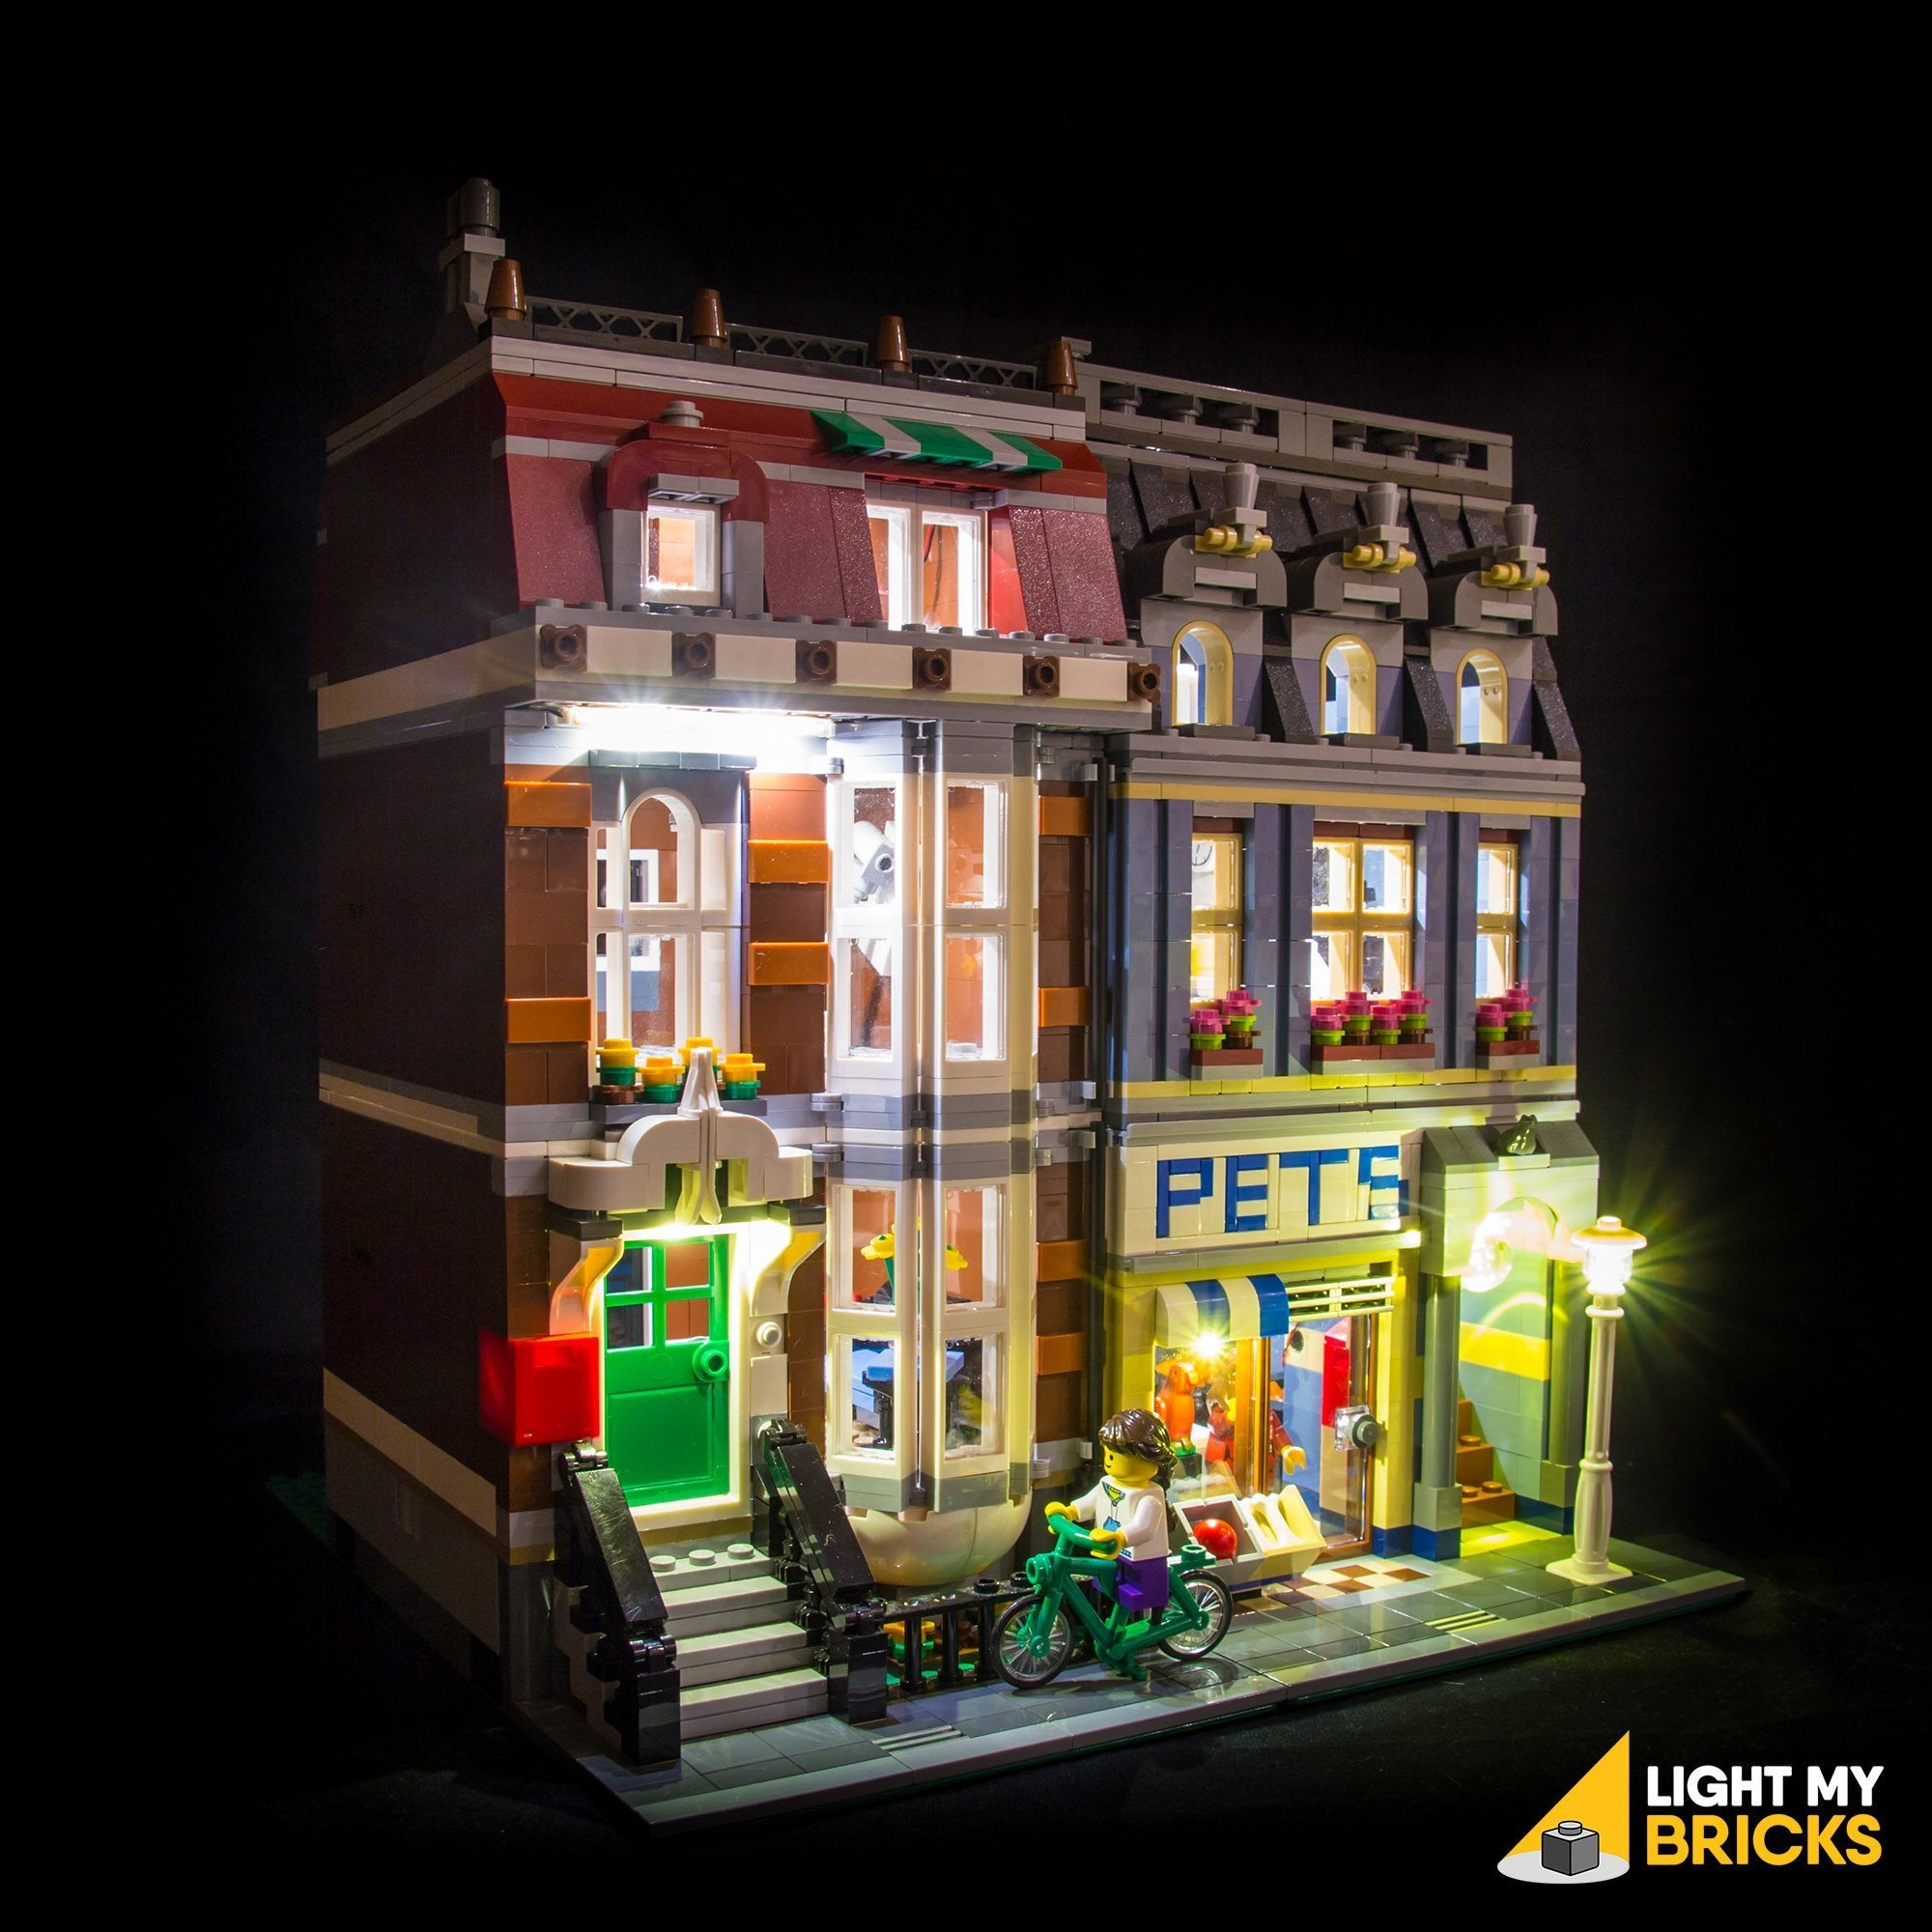 LEGO LED Light Kit for 10218 Pet Shop Front